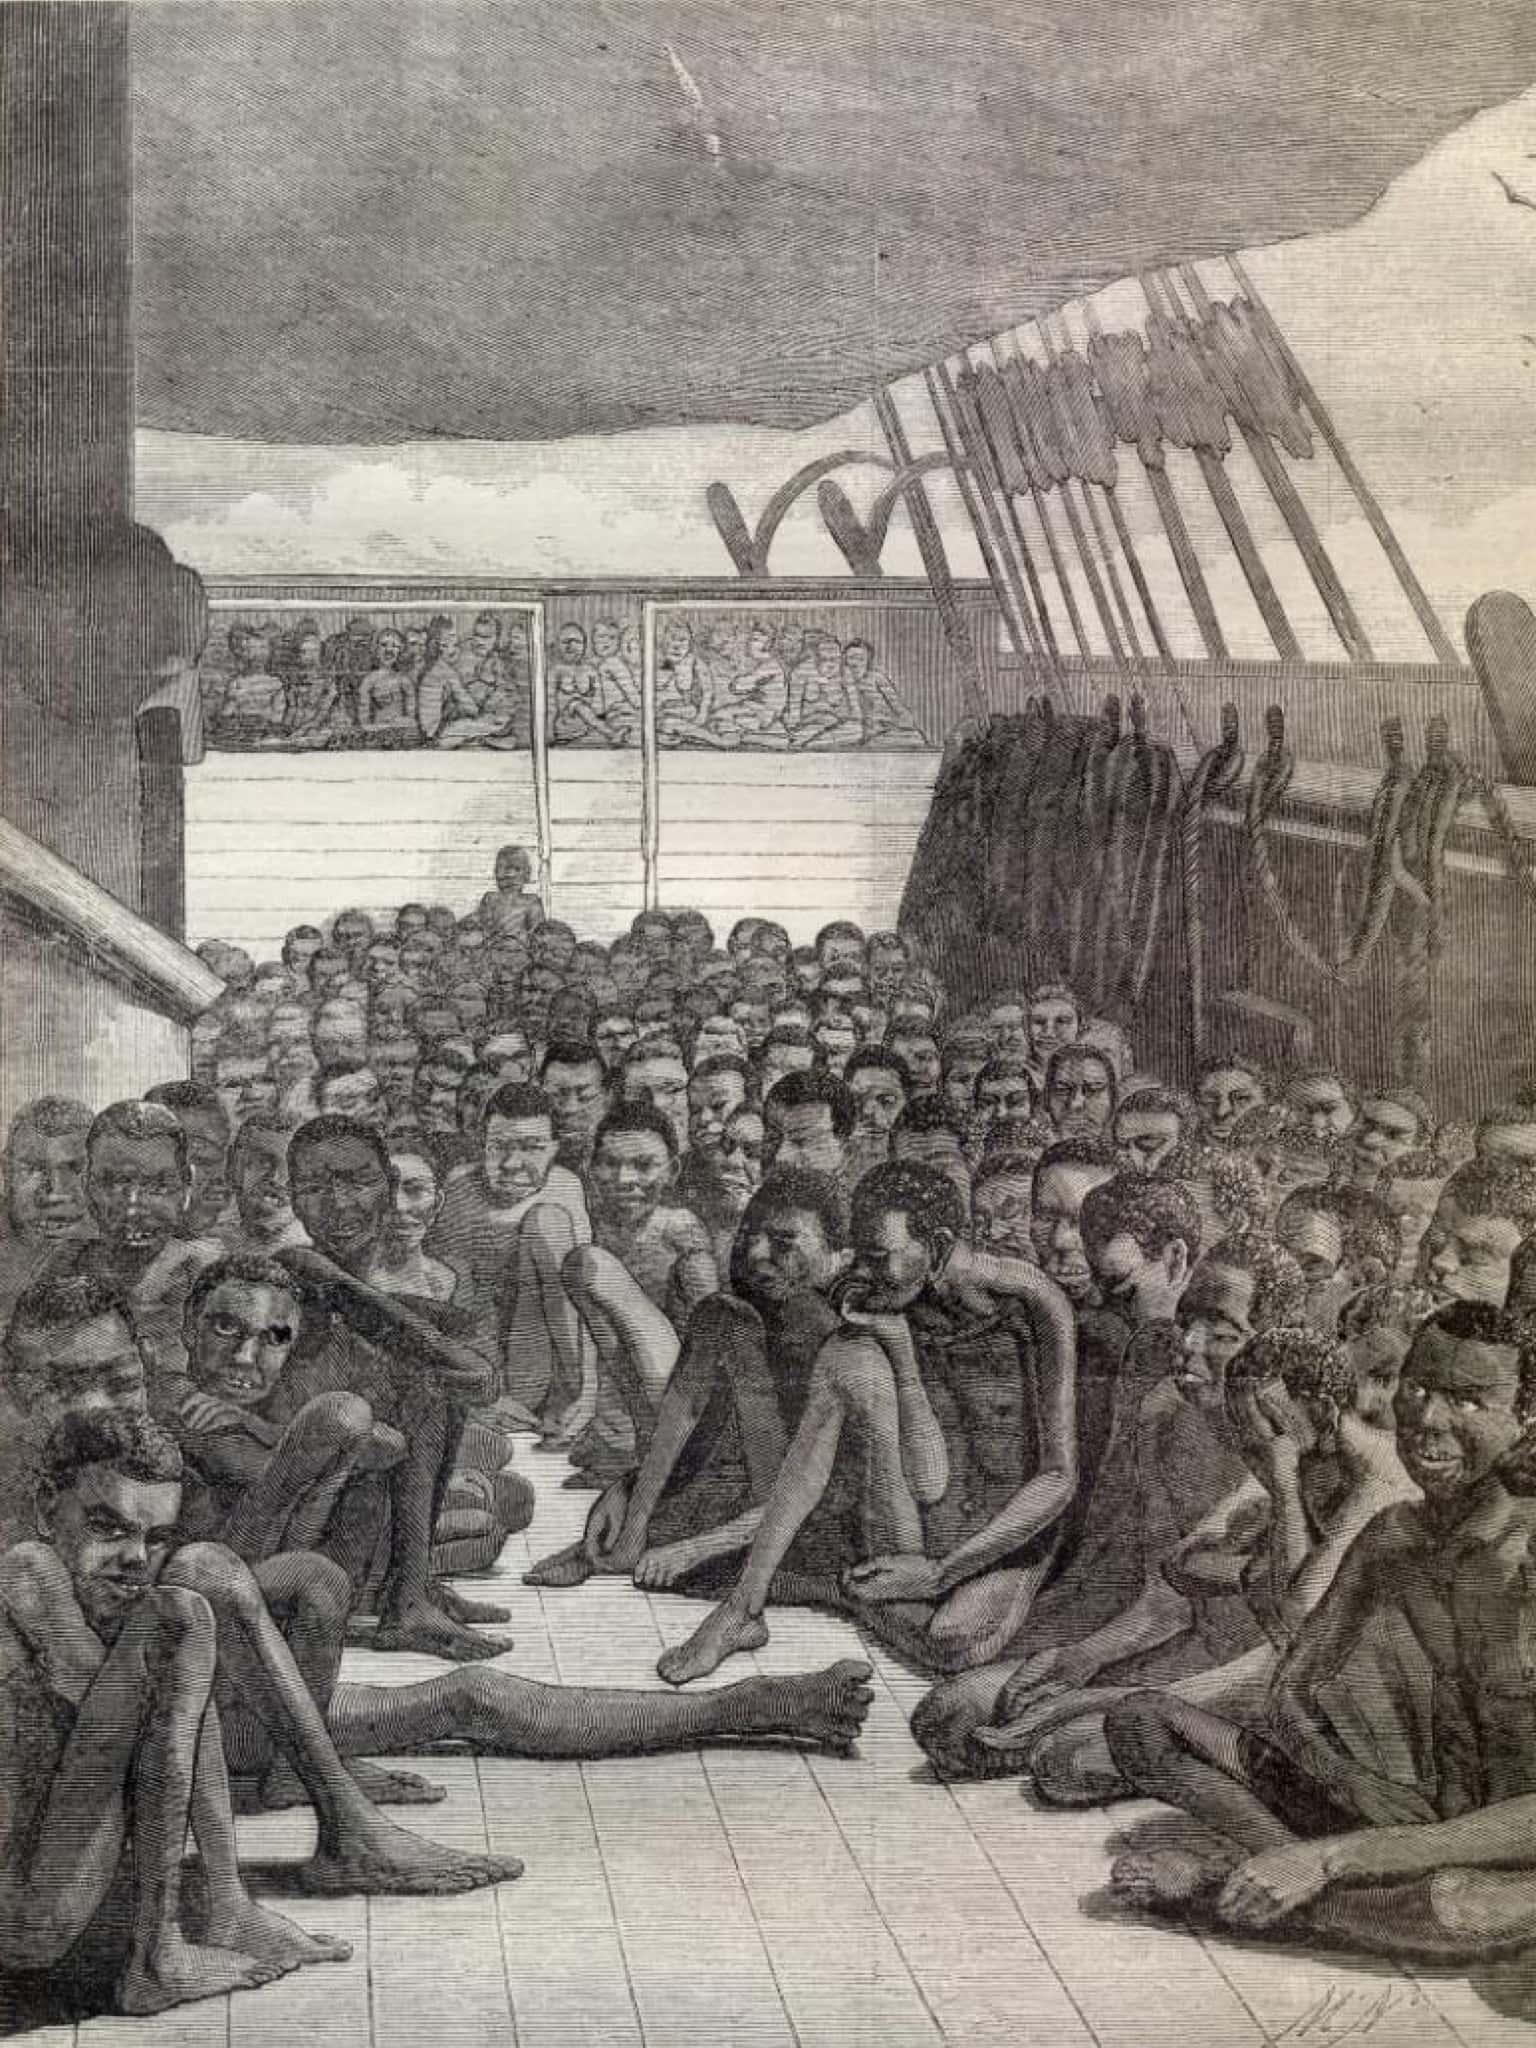 conditions on a slave ship Description of life on board slave ships conditions on board ship during the middle passage were appalling the men were packed together below deck and were.